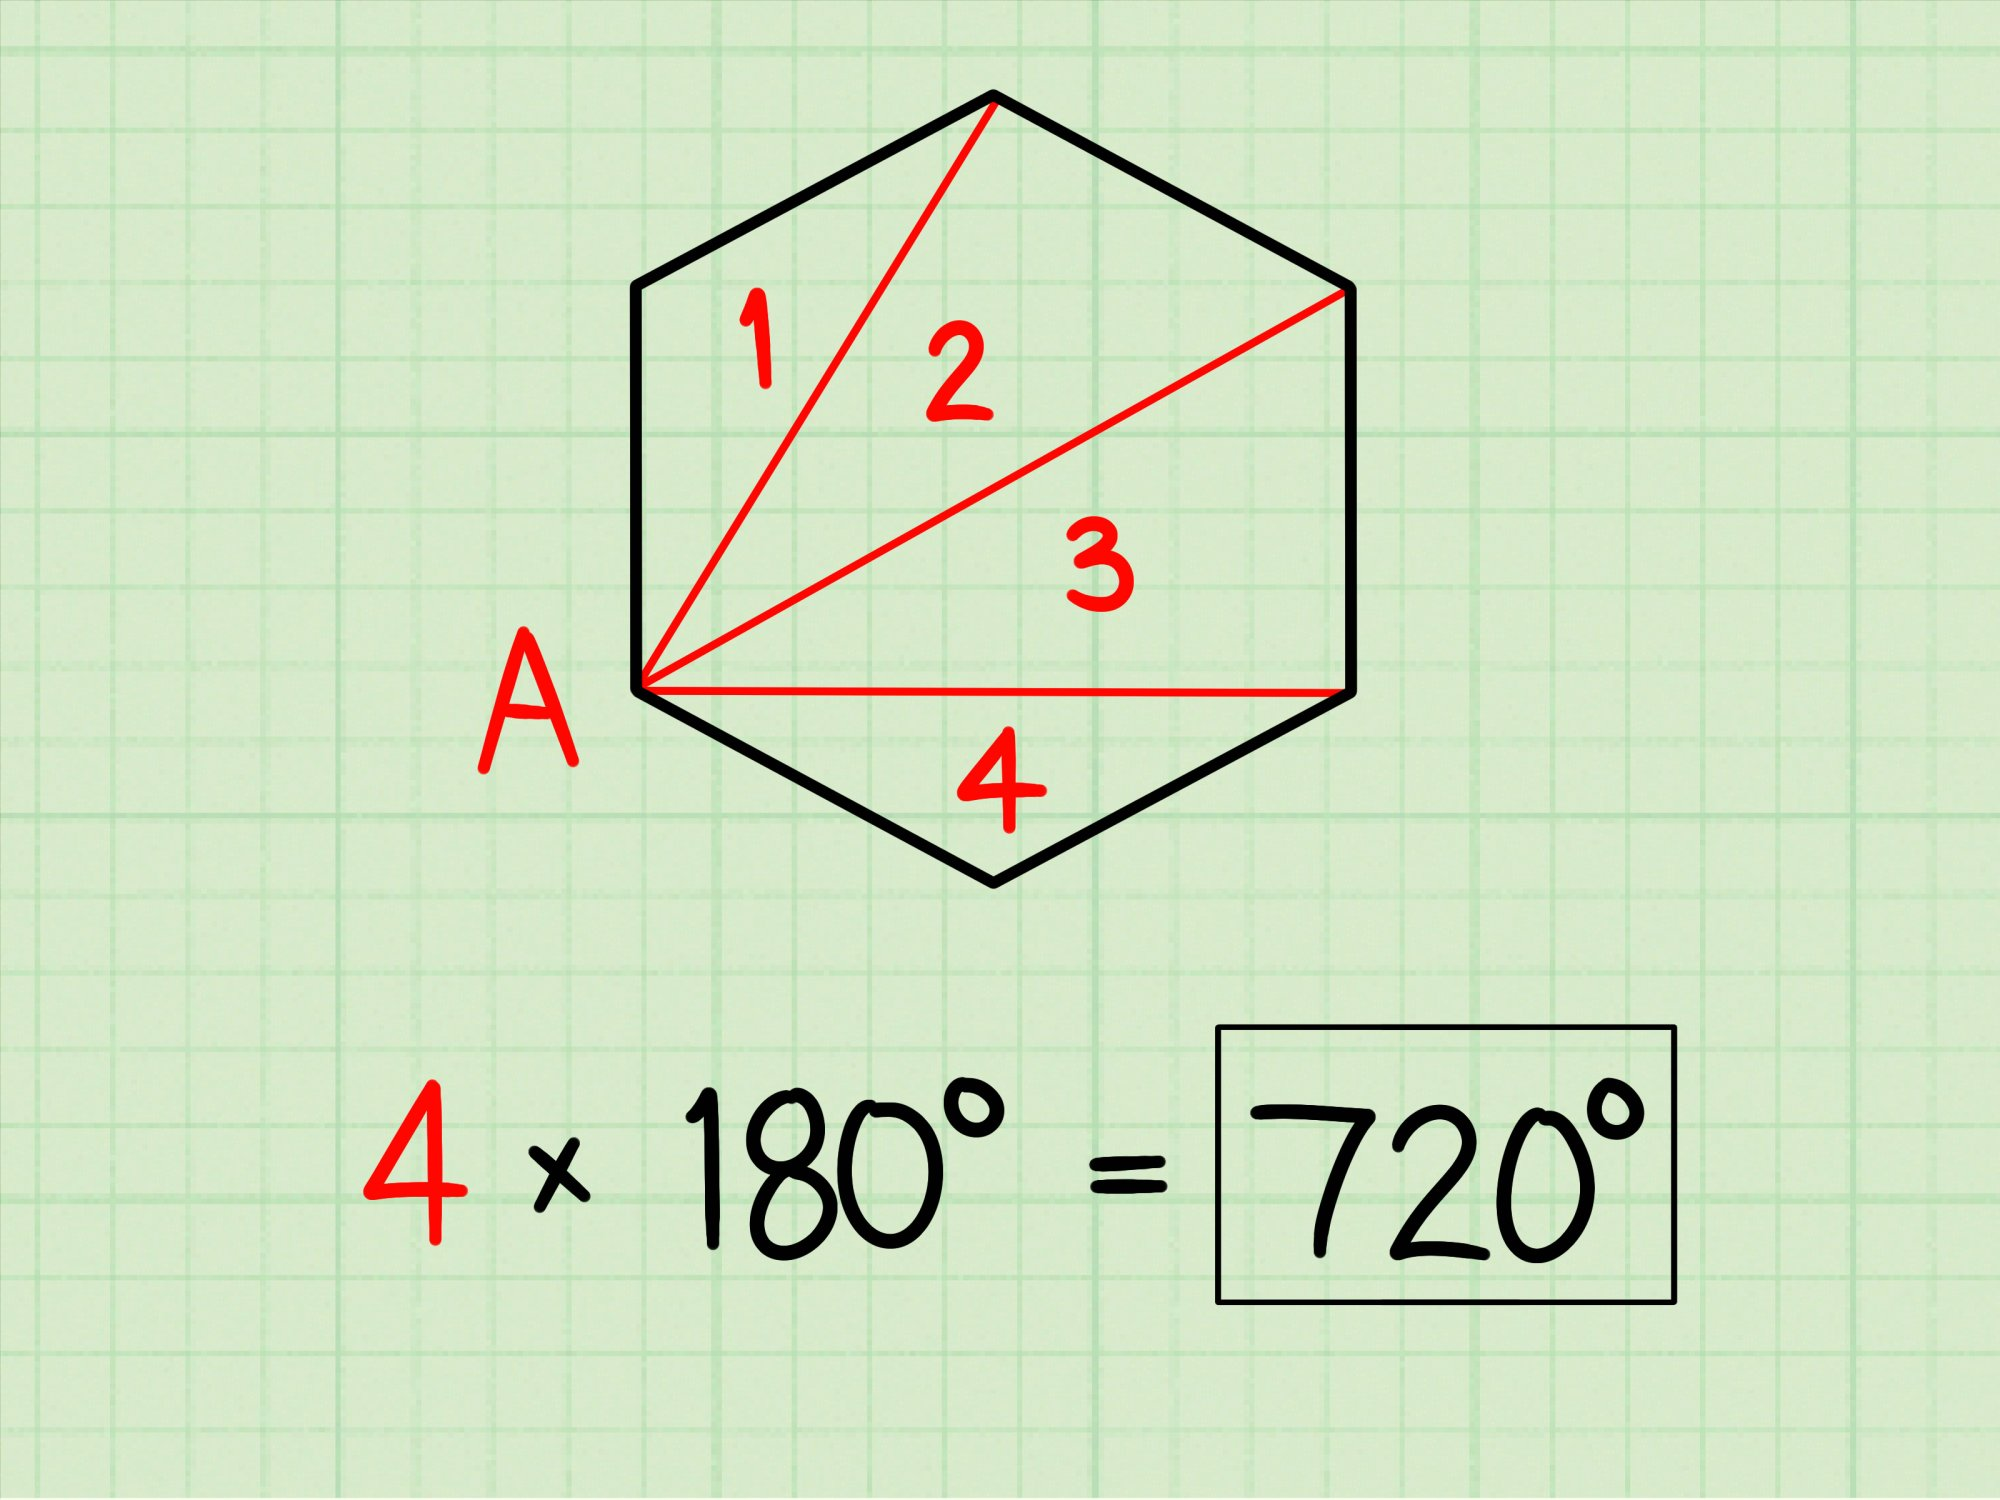 hight resolution of How to Calculate the Sum of Interior Angles: 8 Steps